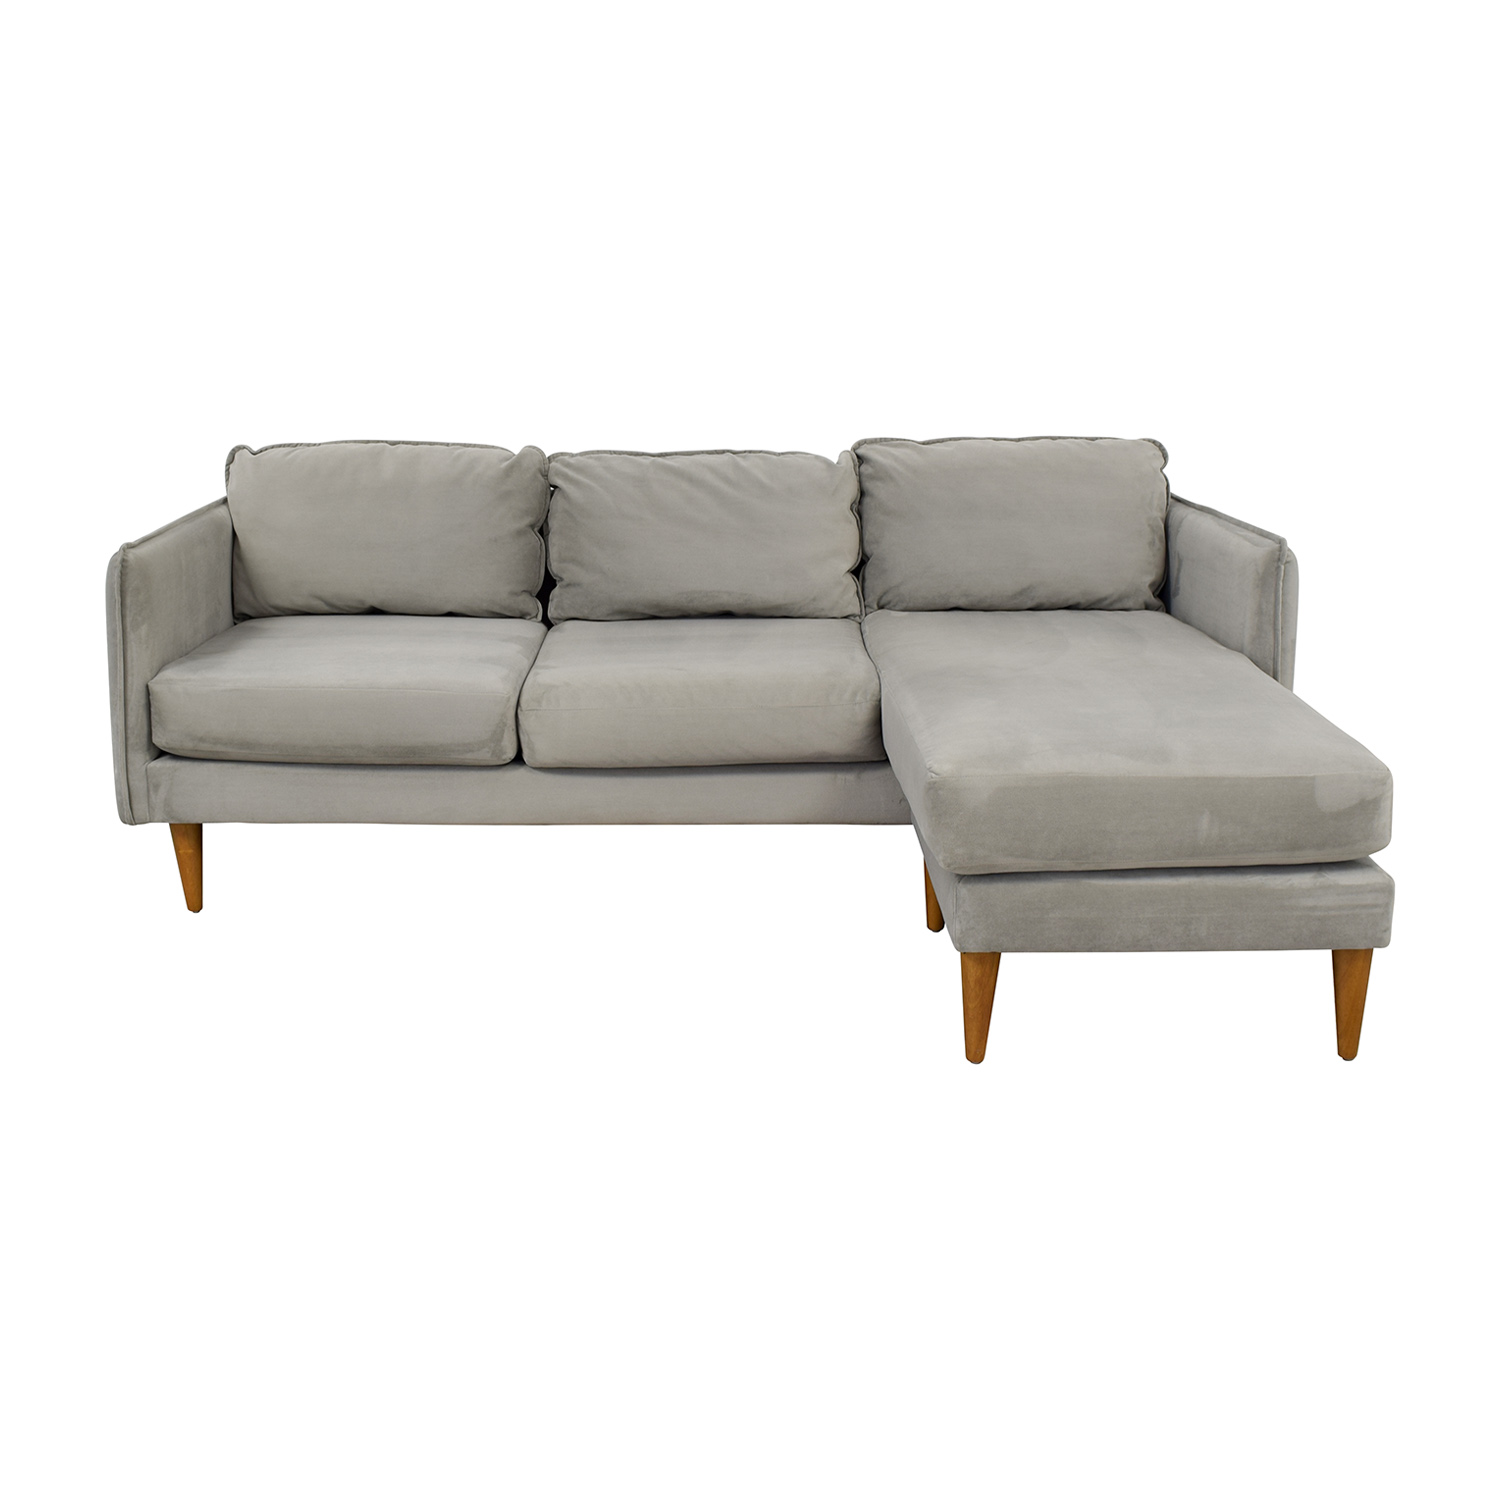 47% OFF - West Elm West Elm Mid Century Chaise Sectional Sofa / Sofas